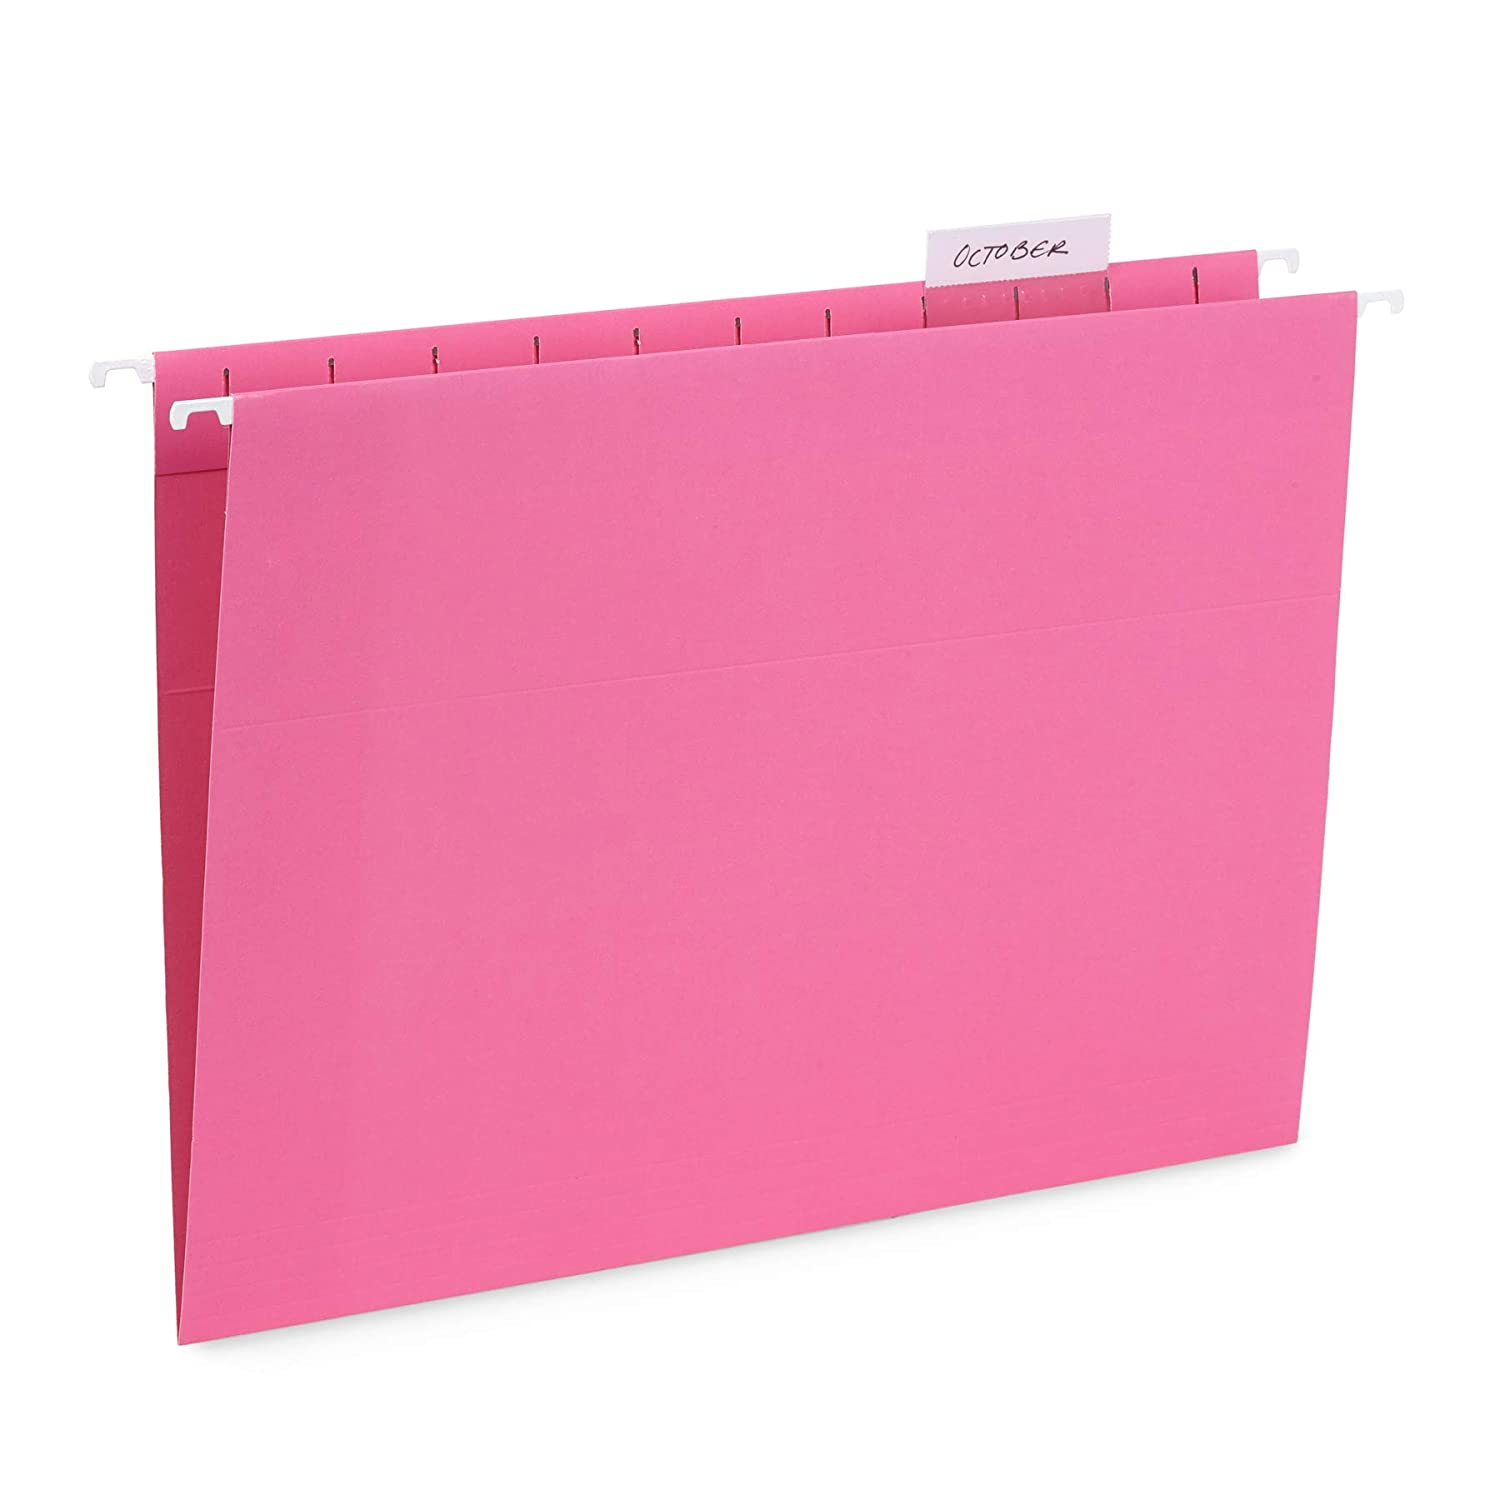 Blue Summit Supplies Hanging File Folders, 25 Reinforced Hang Folders, Designed for Home and Office Color Coded File Organization, Letter Size, Pink, 25 Pack